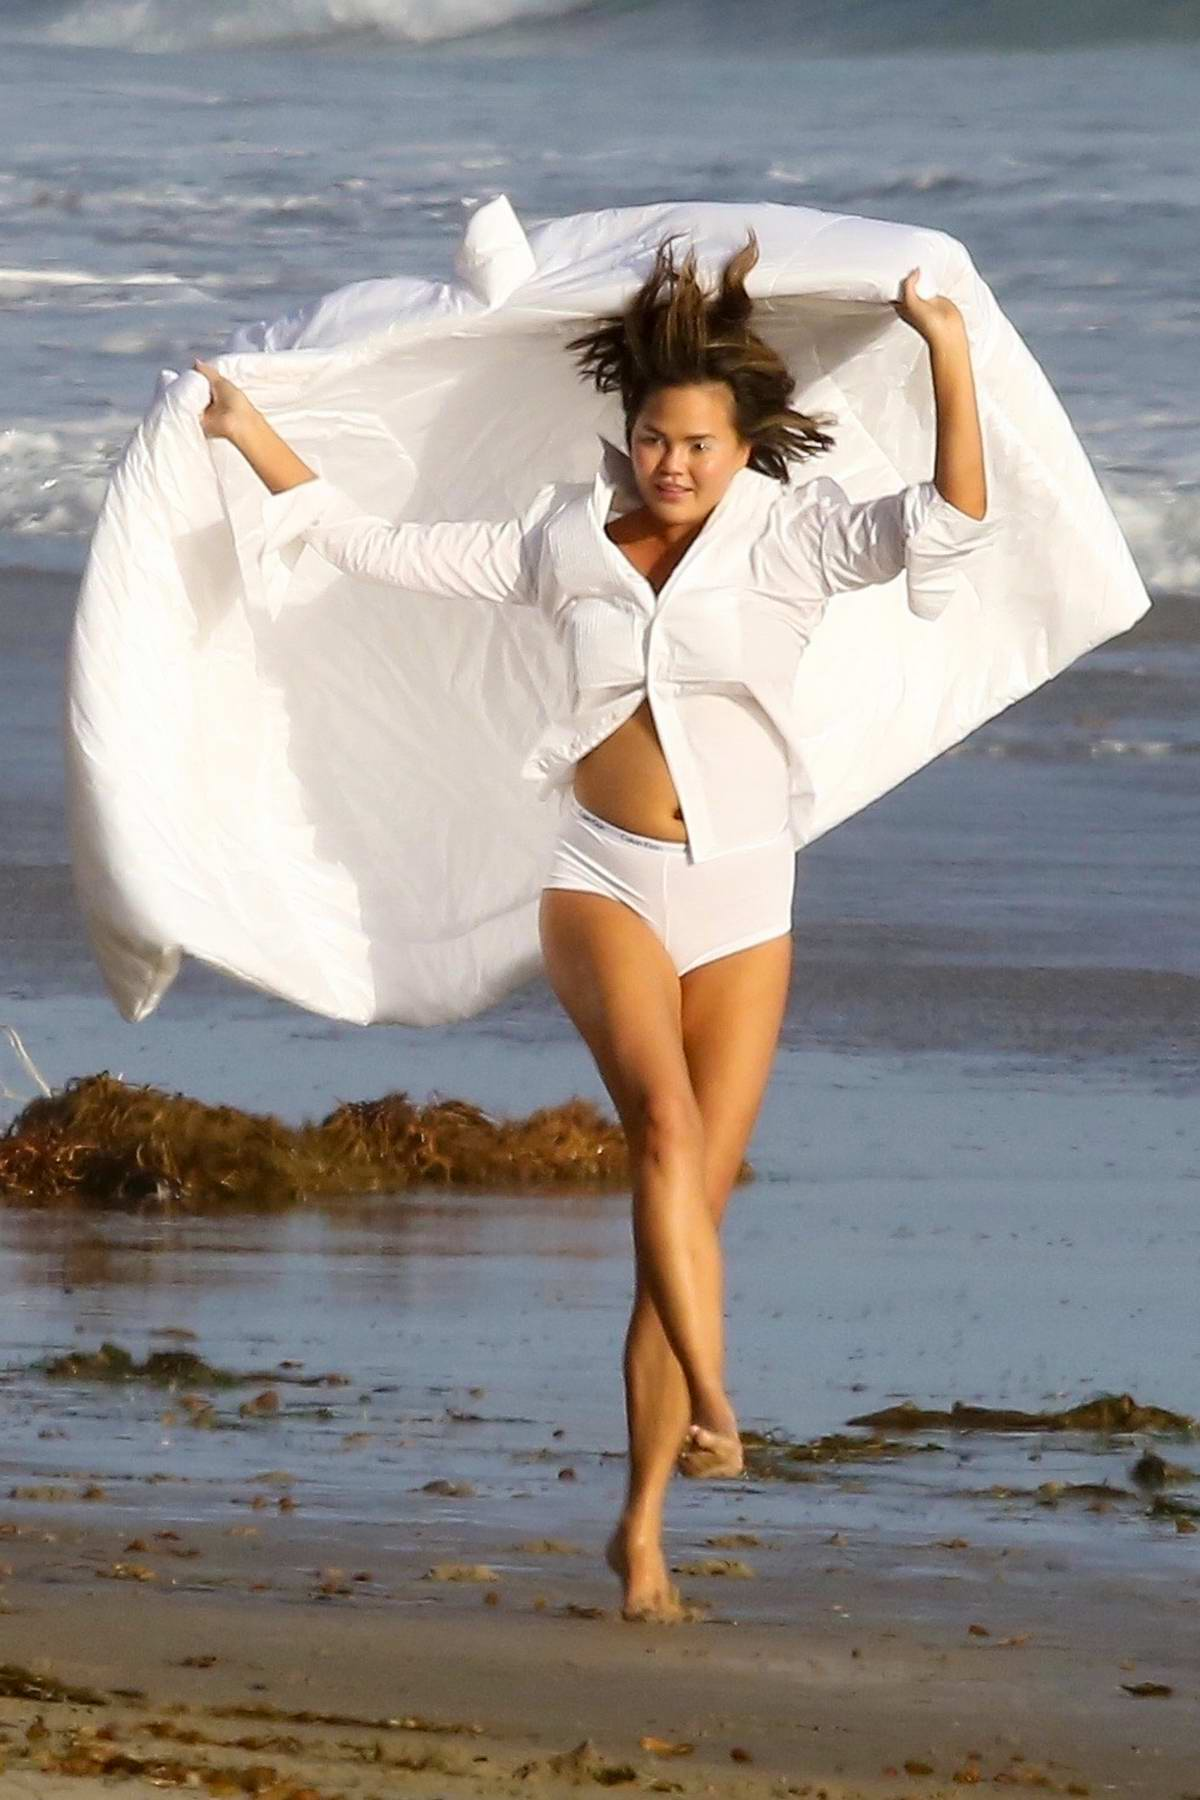 Chrissy Teigen spotted during a Calvin Klein photoshoot at the beach in Malibu, California